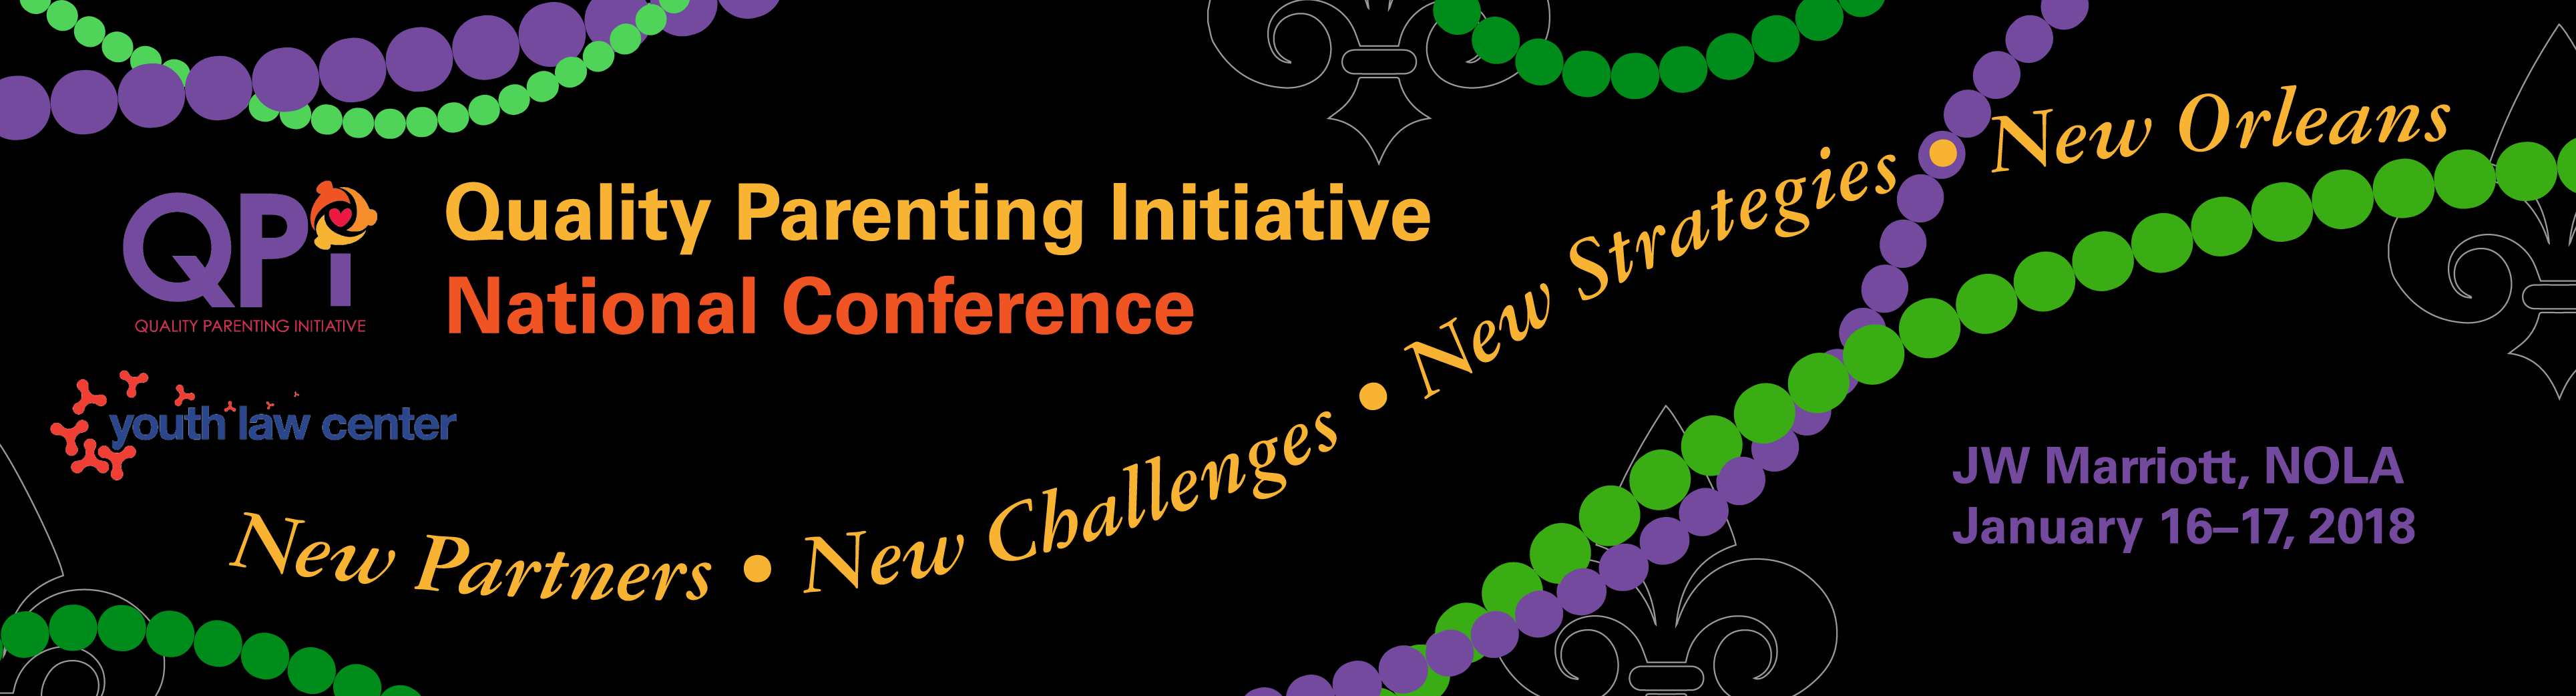 Quality Parenting Initiative National Conference, January 16-17, 2018